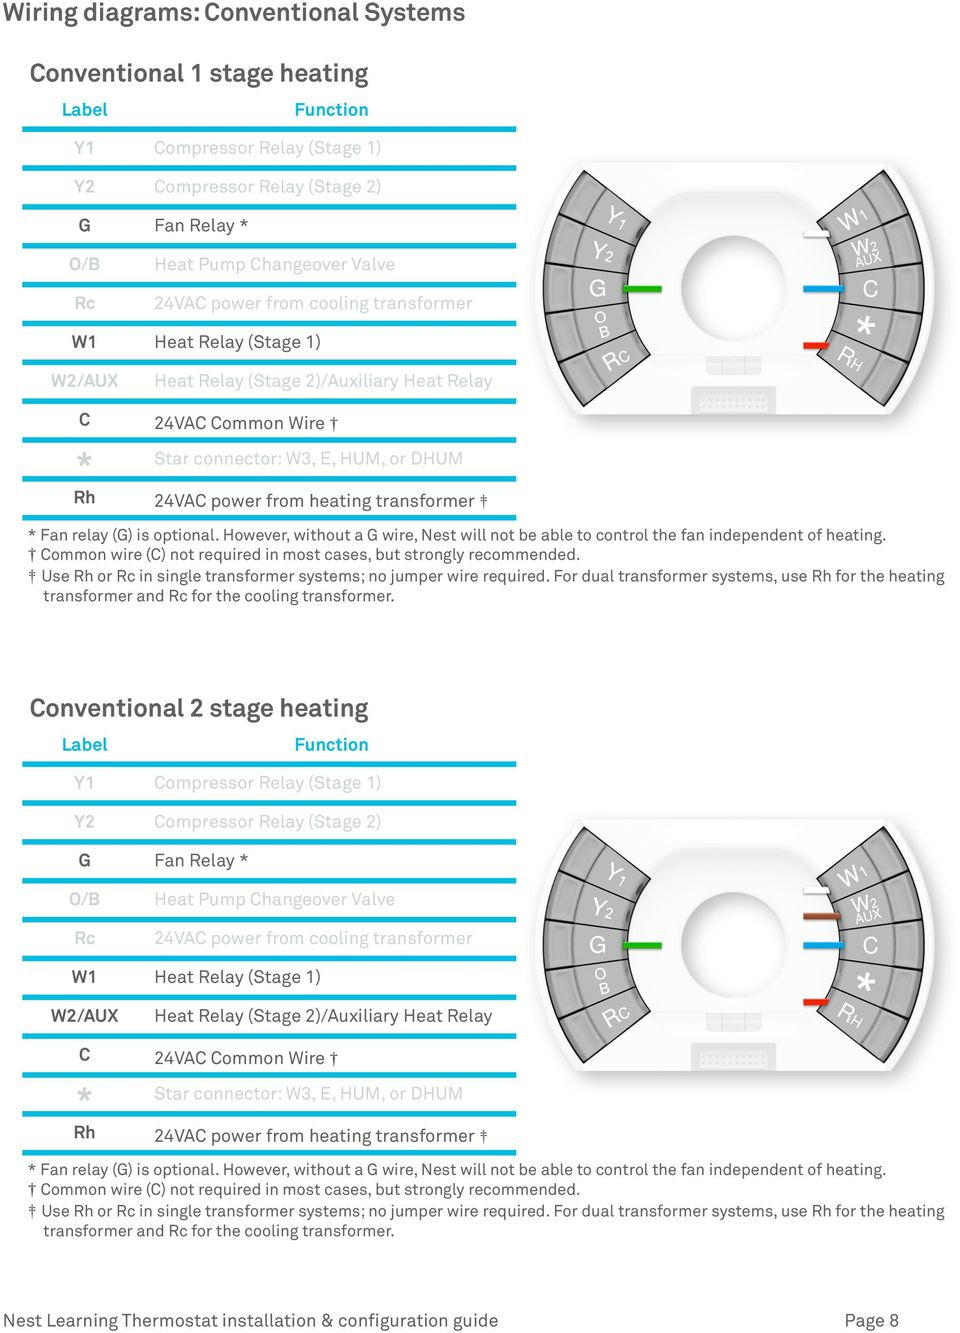 Wiring Diagram For The Nest Pro Learning Thermostat on